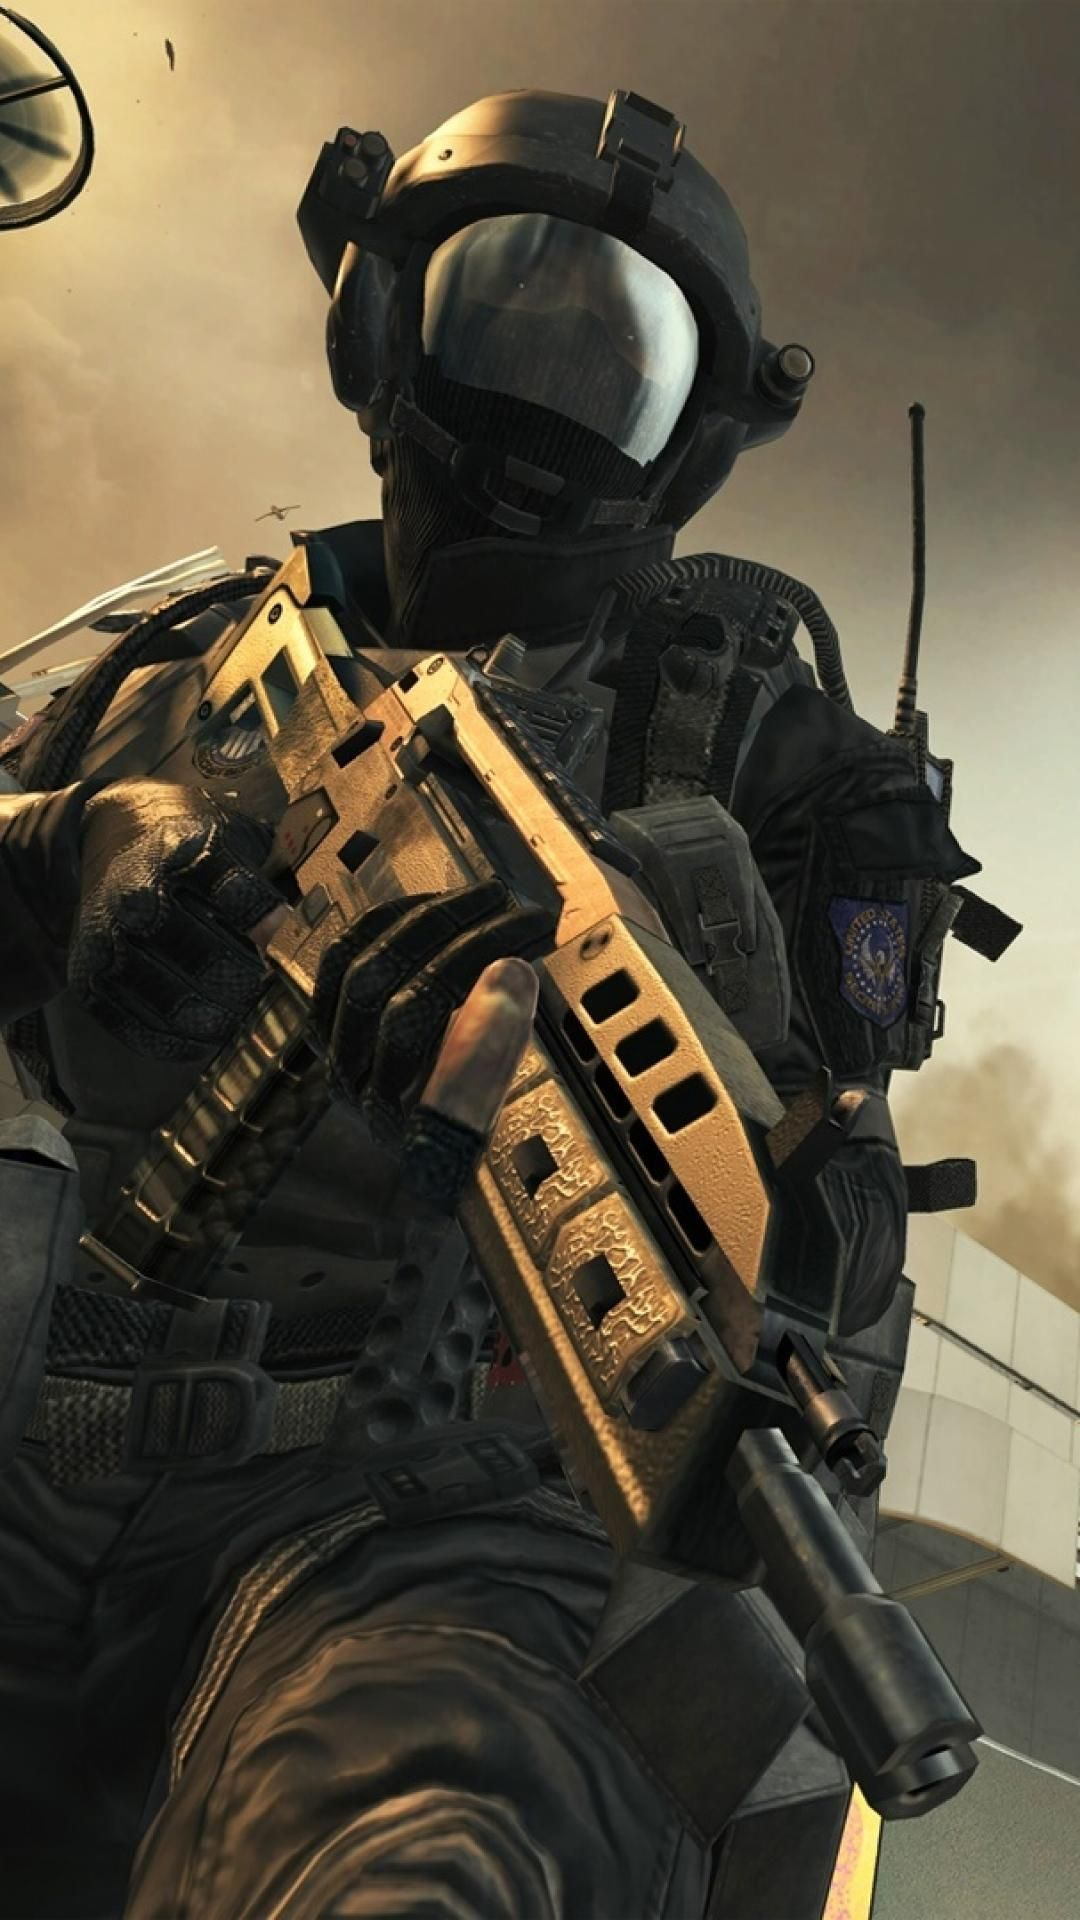 Pin By Cesar Ricardo Klinger Rodrigue On Wallpapers Iphone Call Of Duty Black Ops 3 Call Of Duty Black Call Of Duty